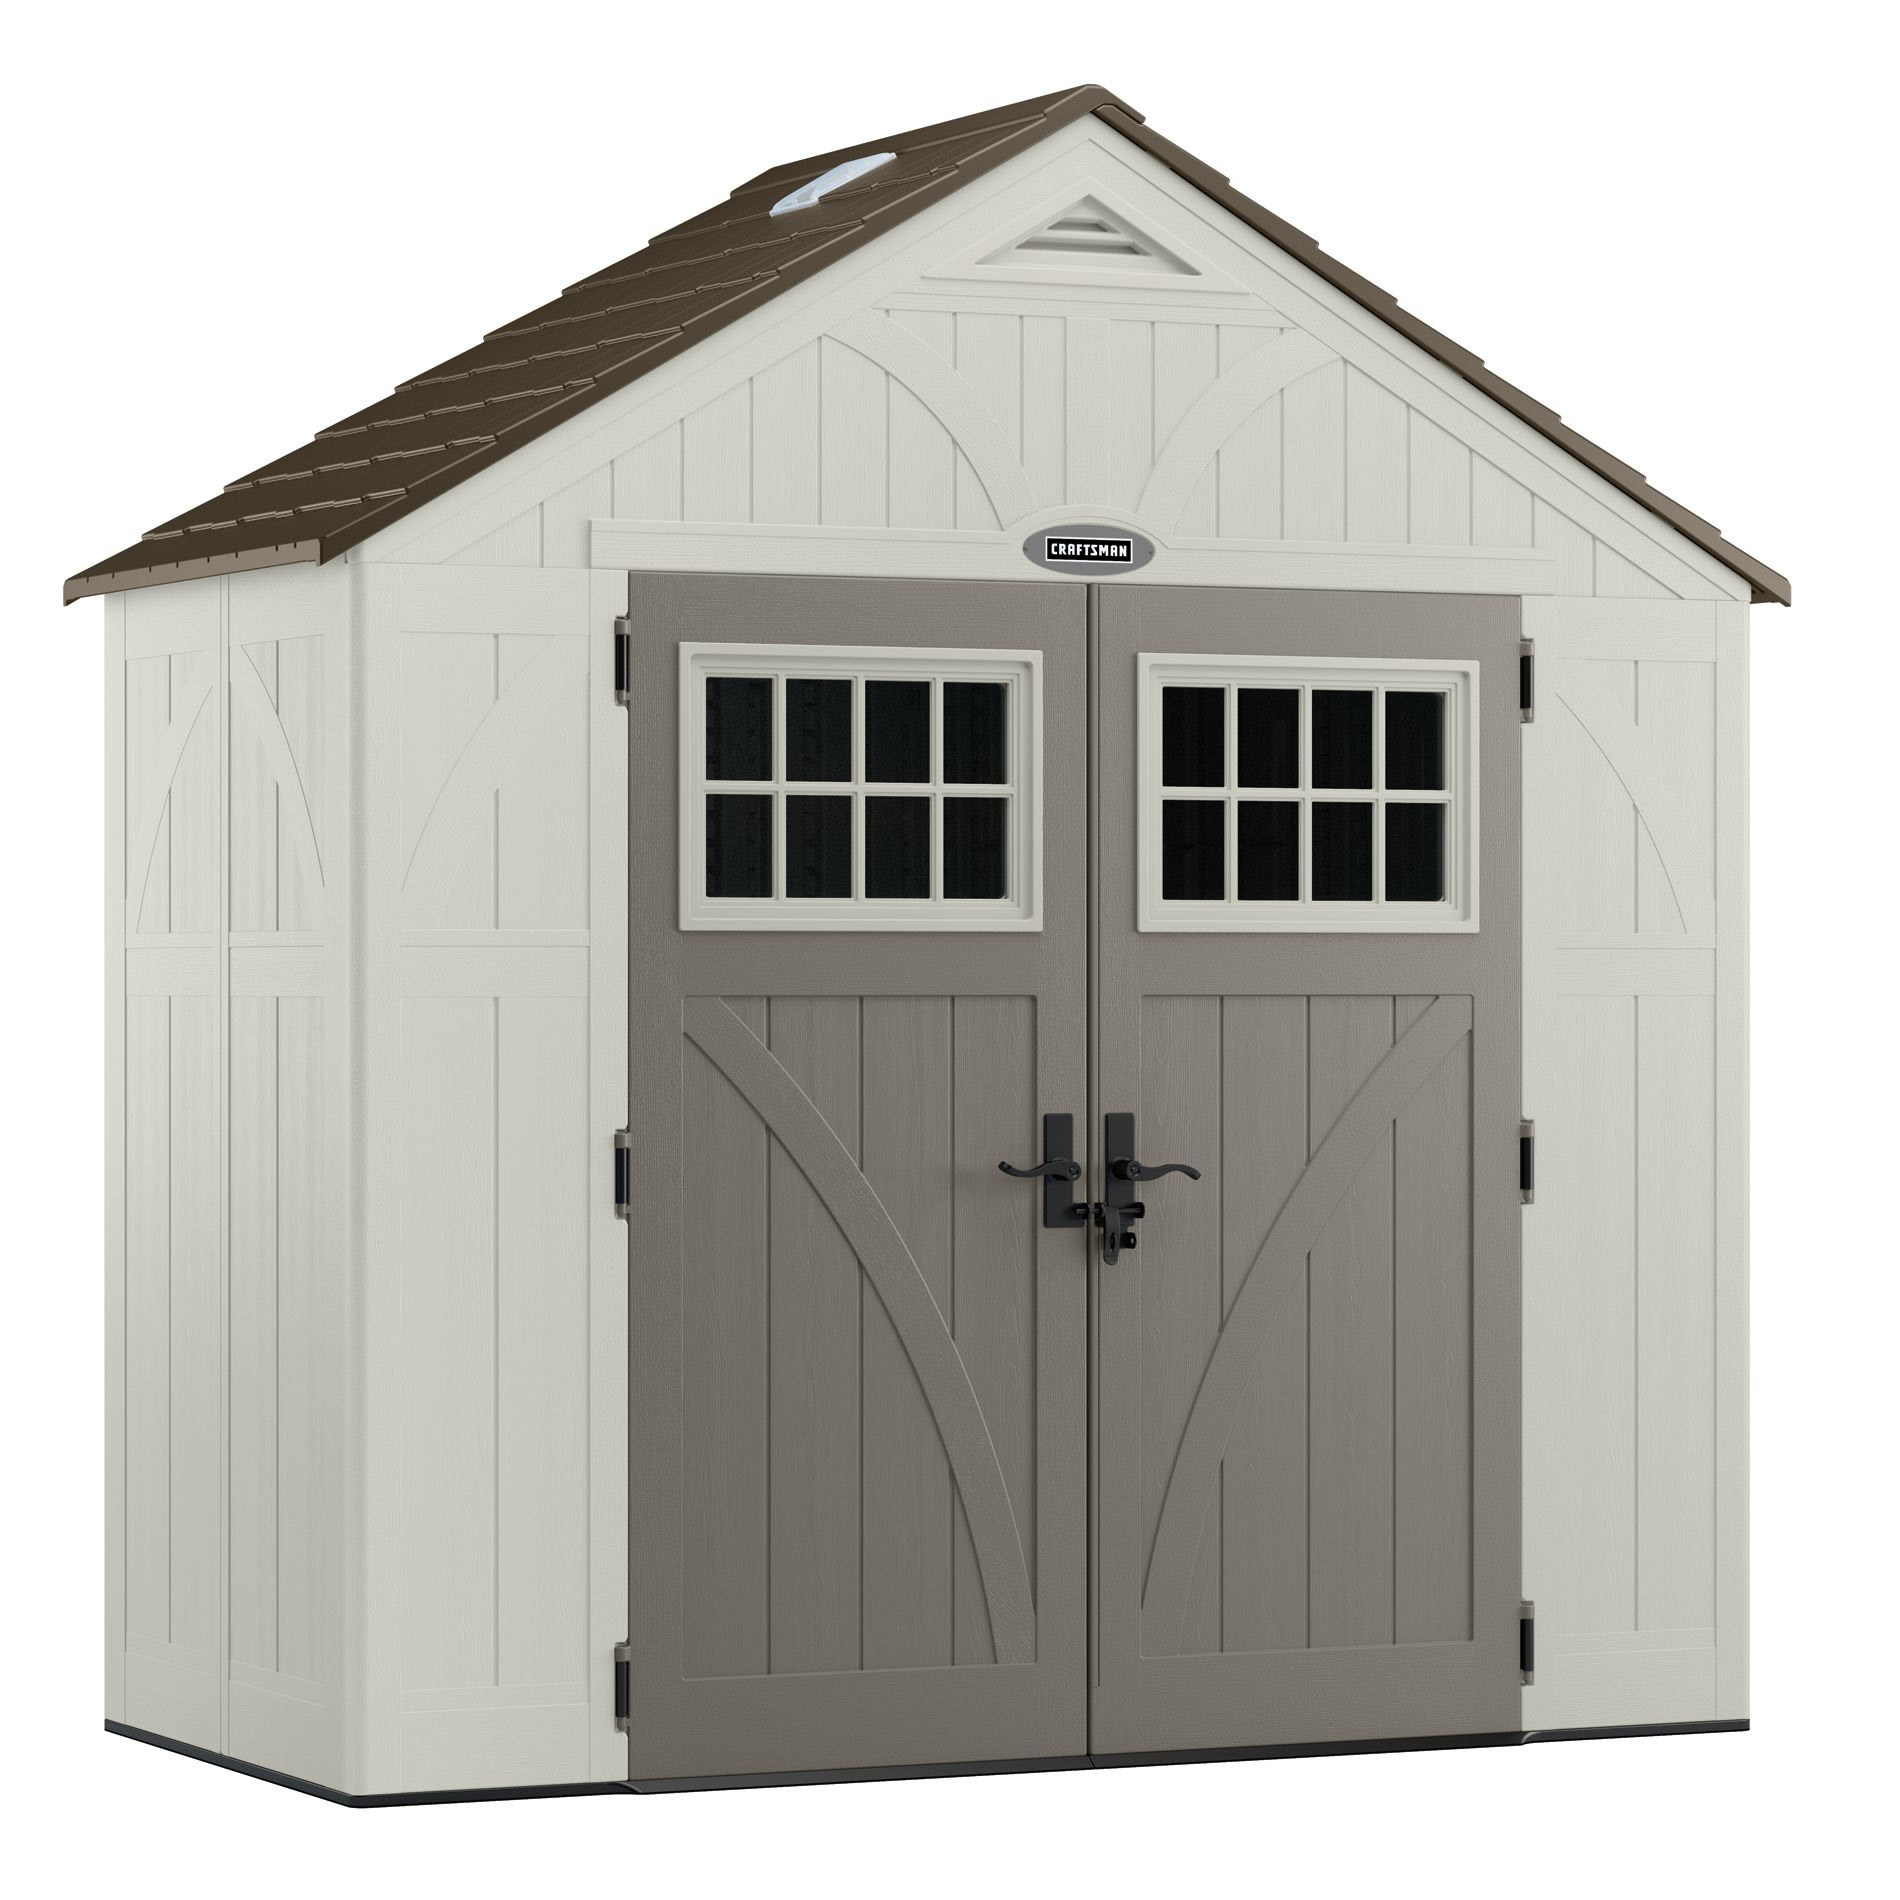 Entrancing 25 Garden Sheds 7 X 3 Decorating Inspiration Garden